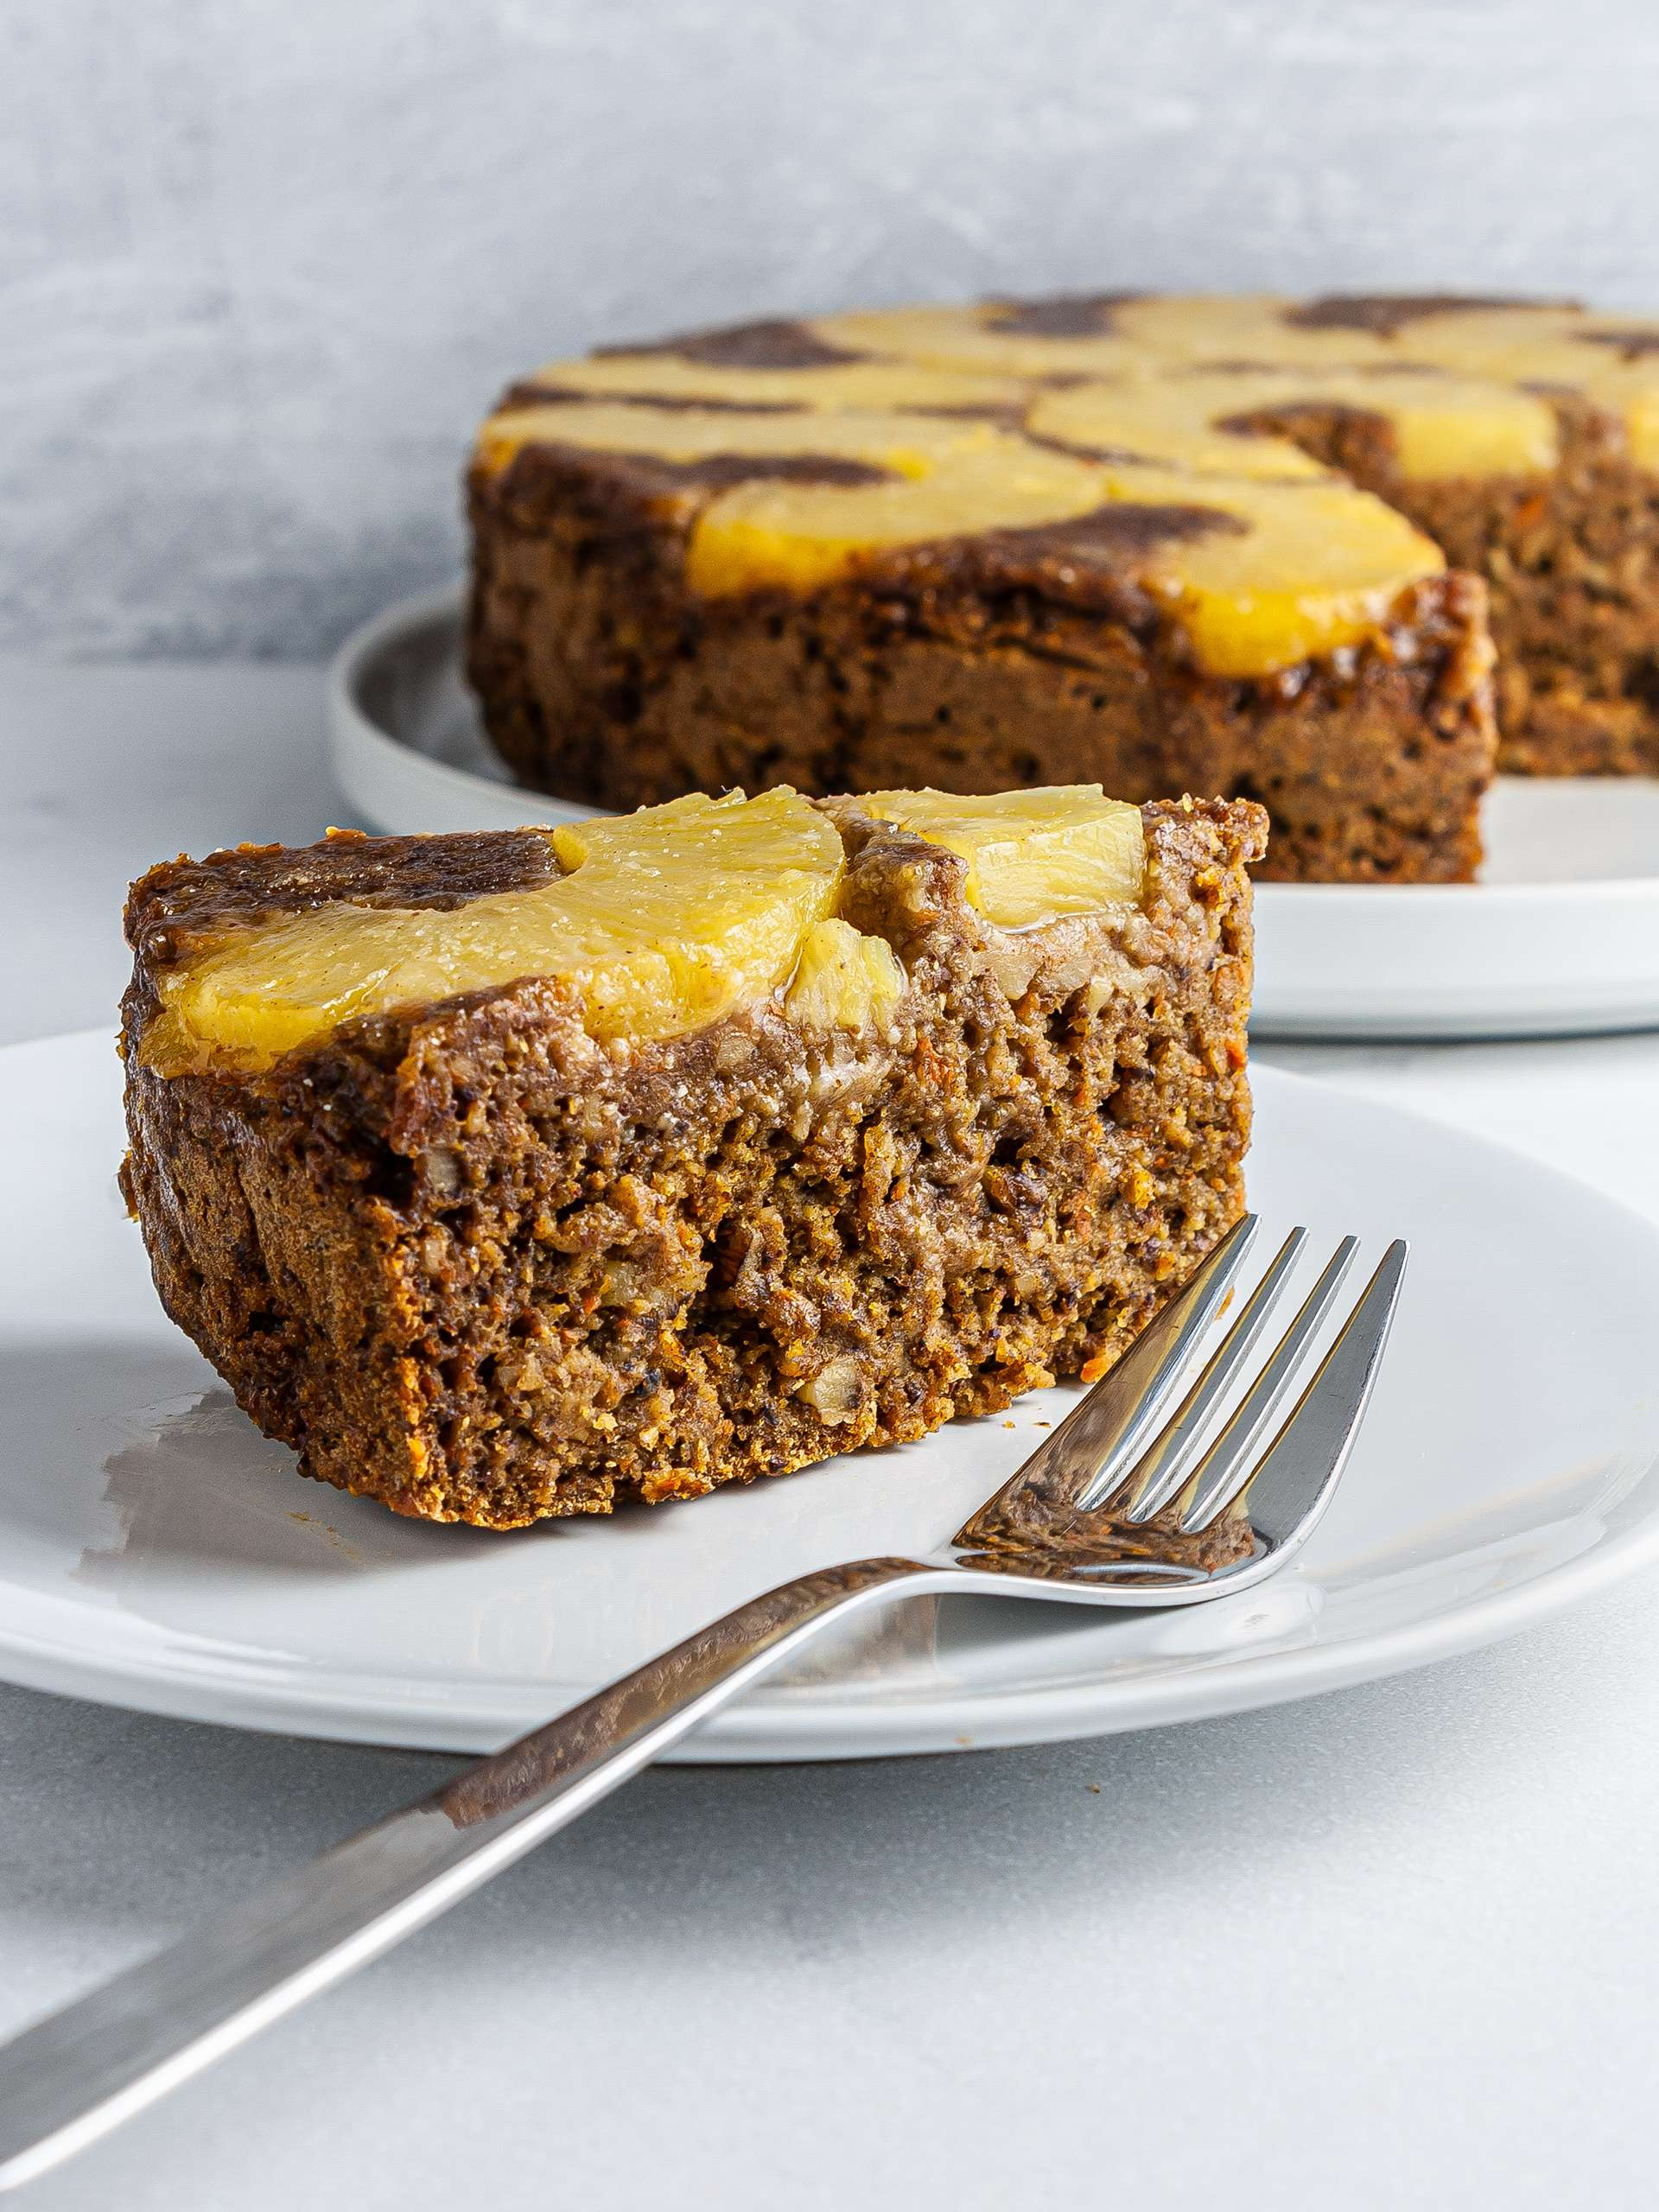 Gluten-Free Carrot Cake with Pineapple Thumbnail